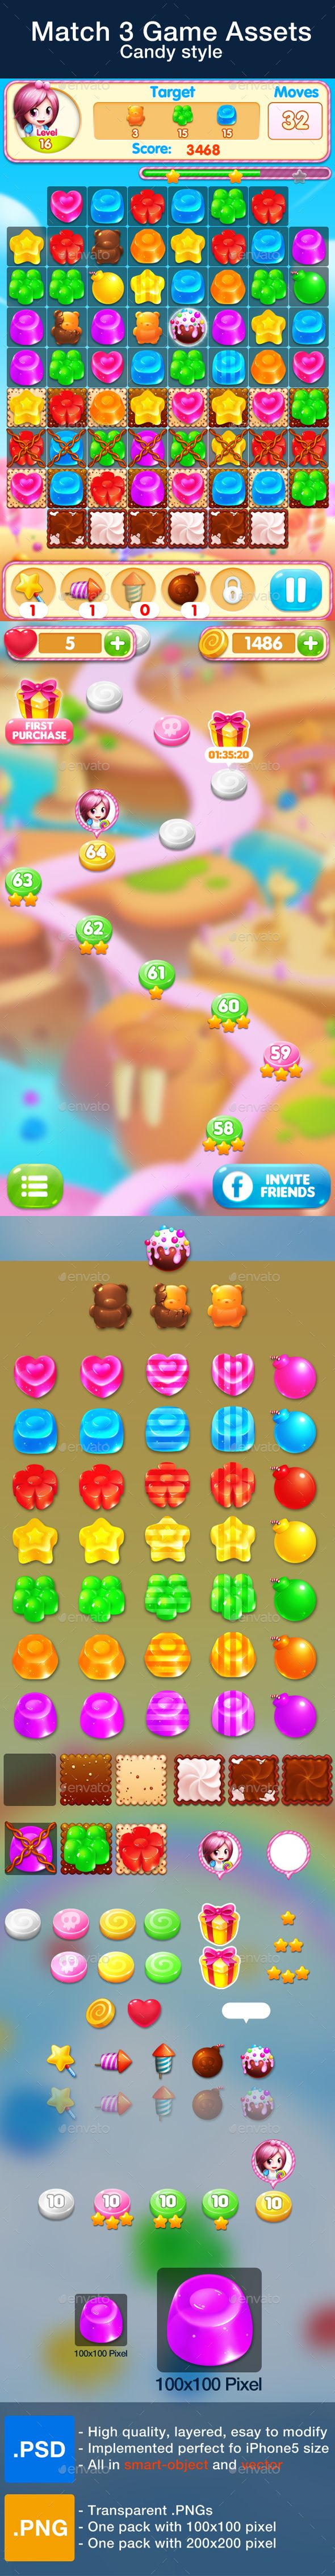 Match 3 Game Assets - Candy Style | Download: https://graphicriver.net/item/match-3-game-assets-candy-style/18149706?ref=sinzo #Game #Kits #GameAssets